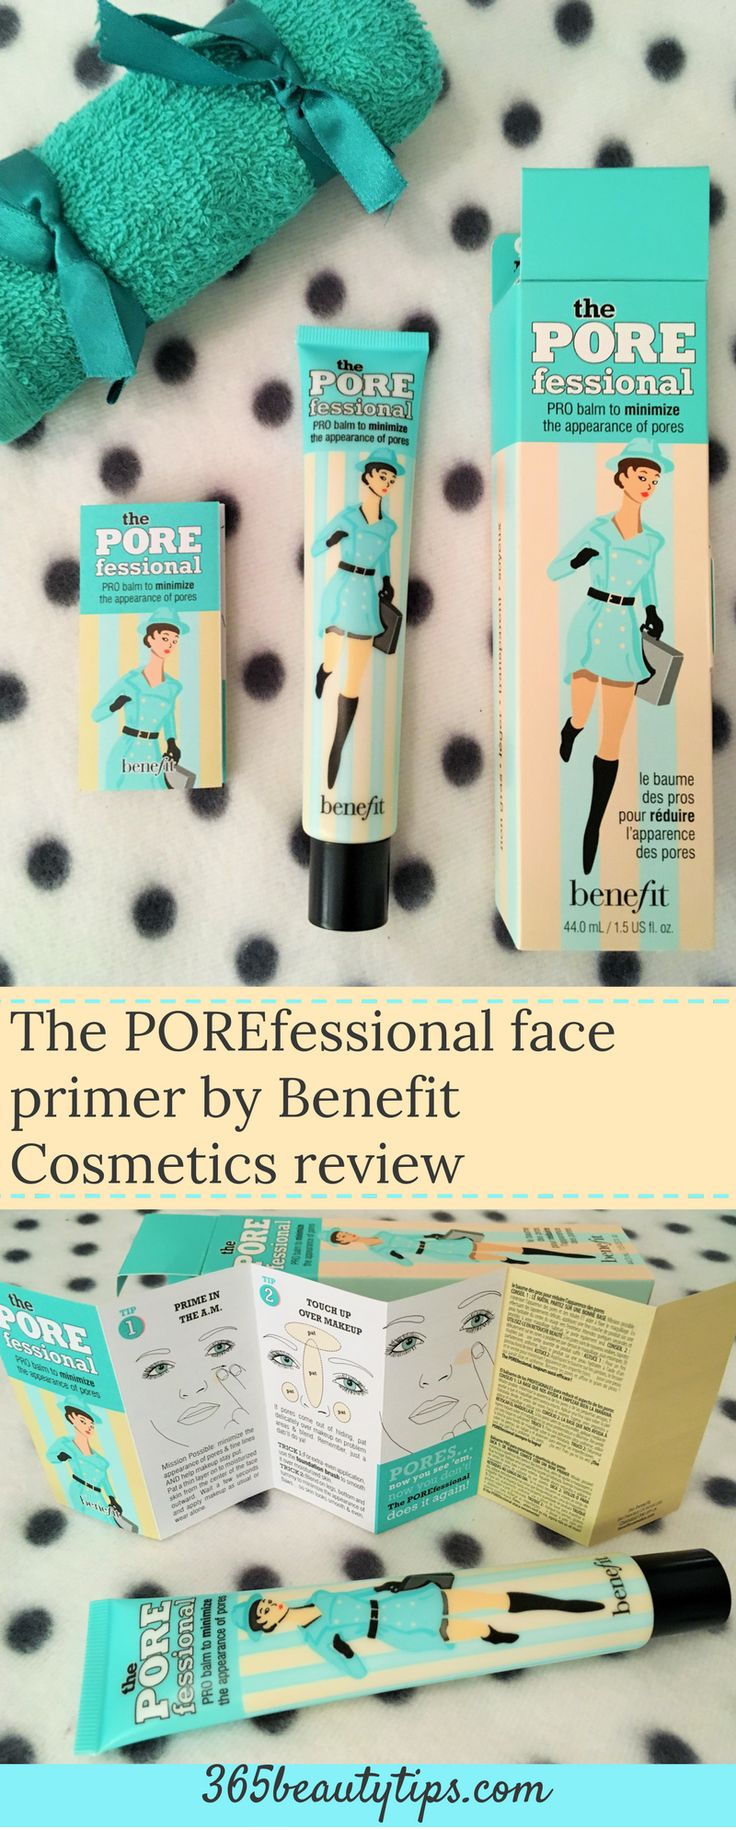 The POREfessional face primer by Benefit Cosmetics review and swatch